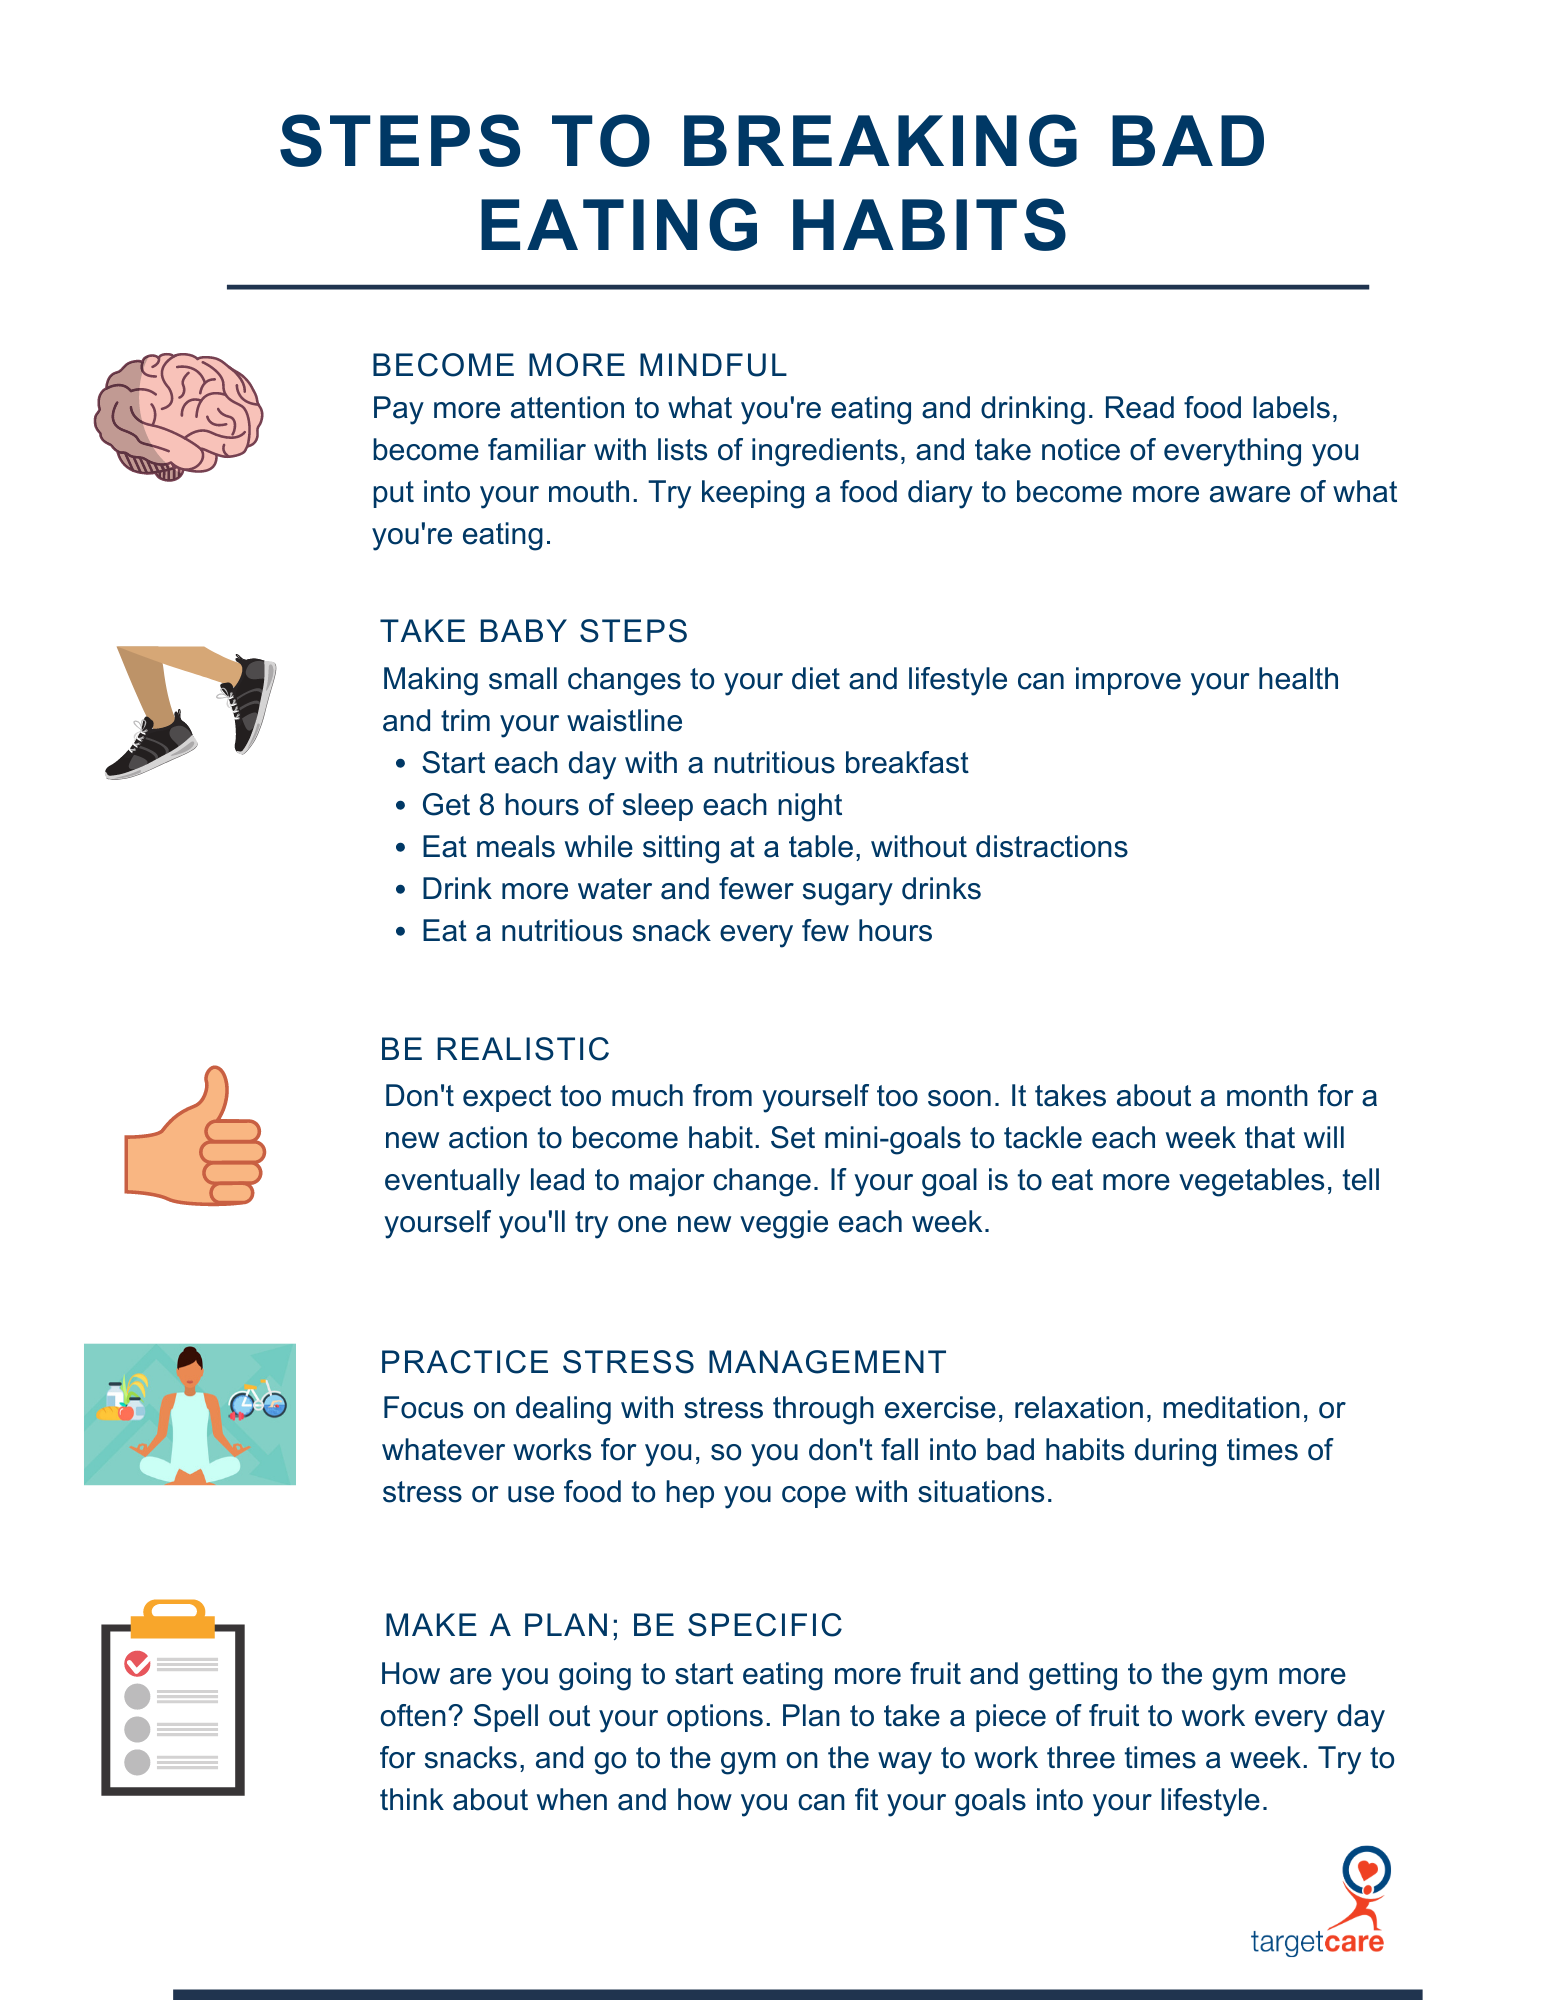 5 Steps to breaking bad eating habits (1)